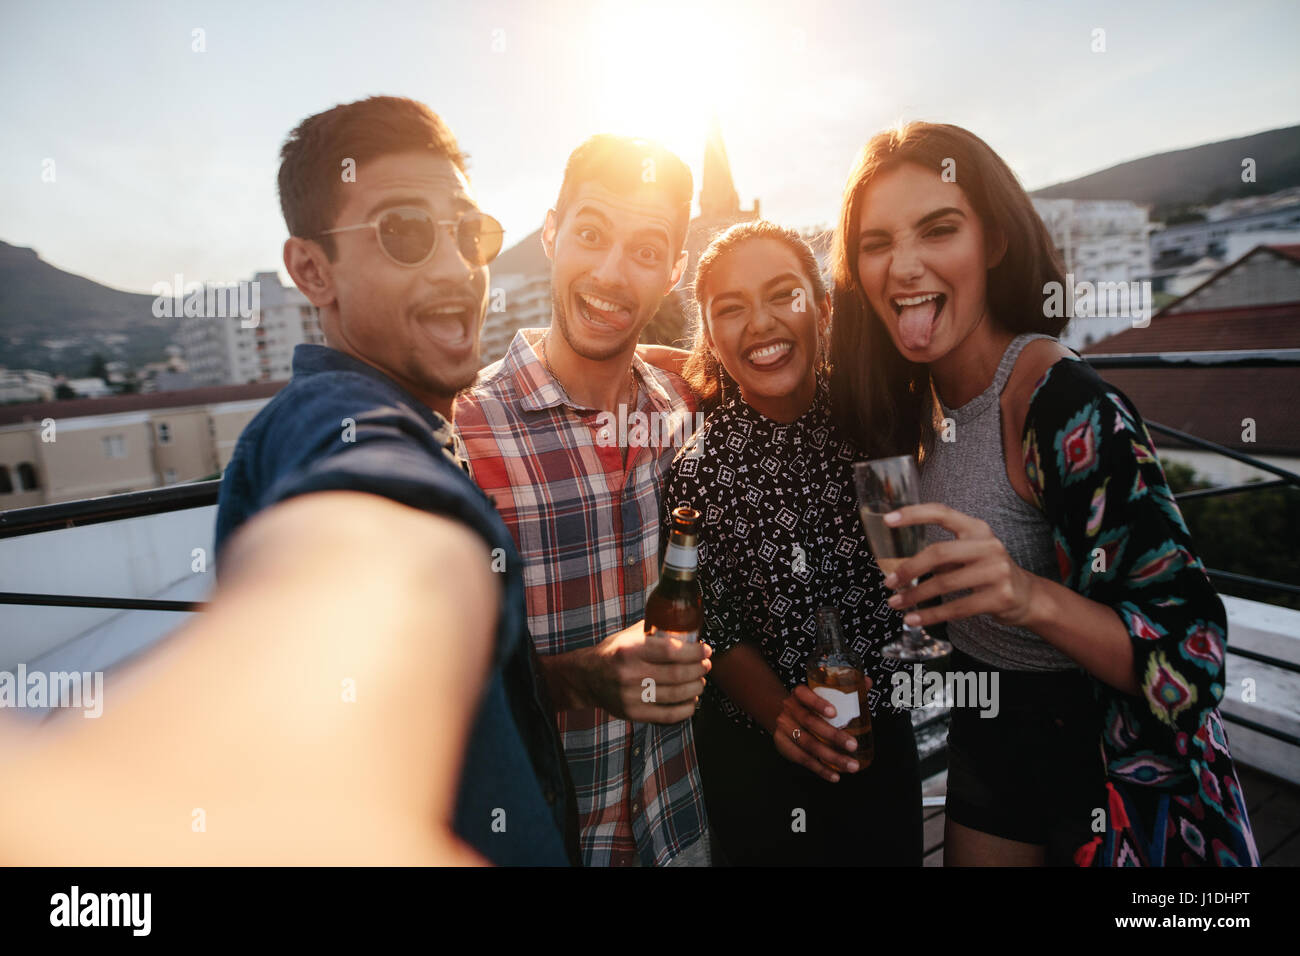 Groupe de personnes ayant une partie sur le toit en faisant un. selfies Happy young friends taking self portrait Photo Stock